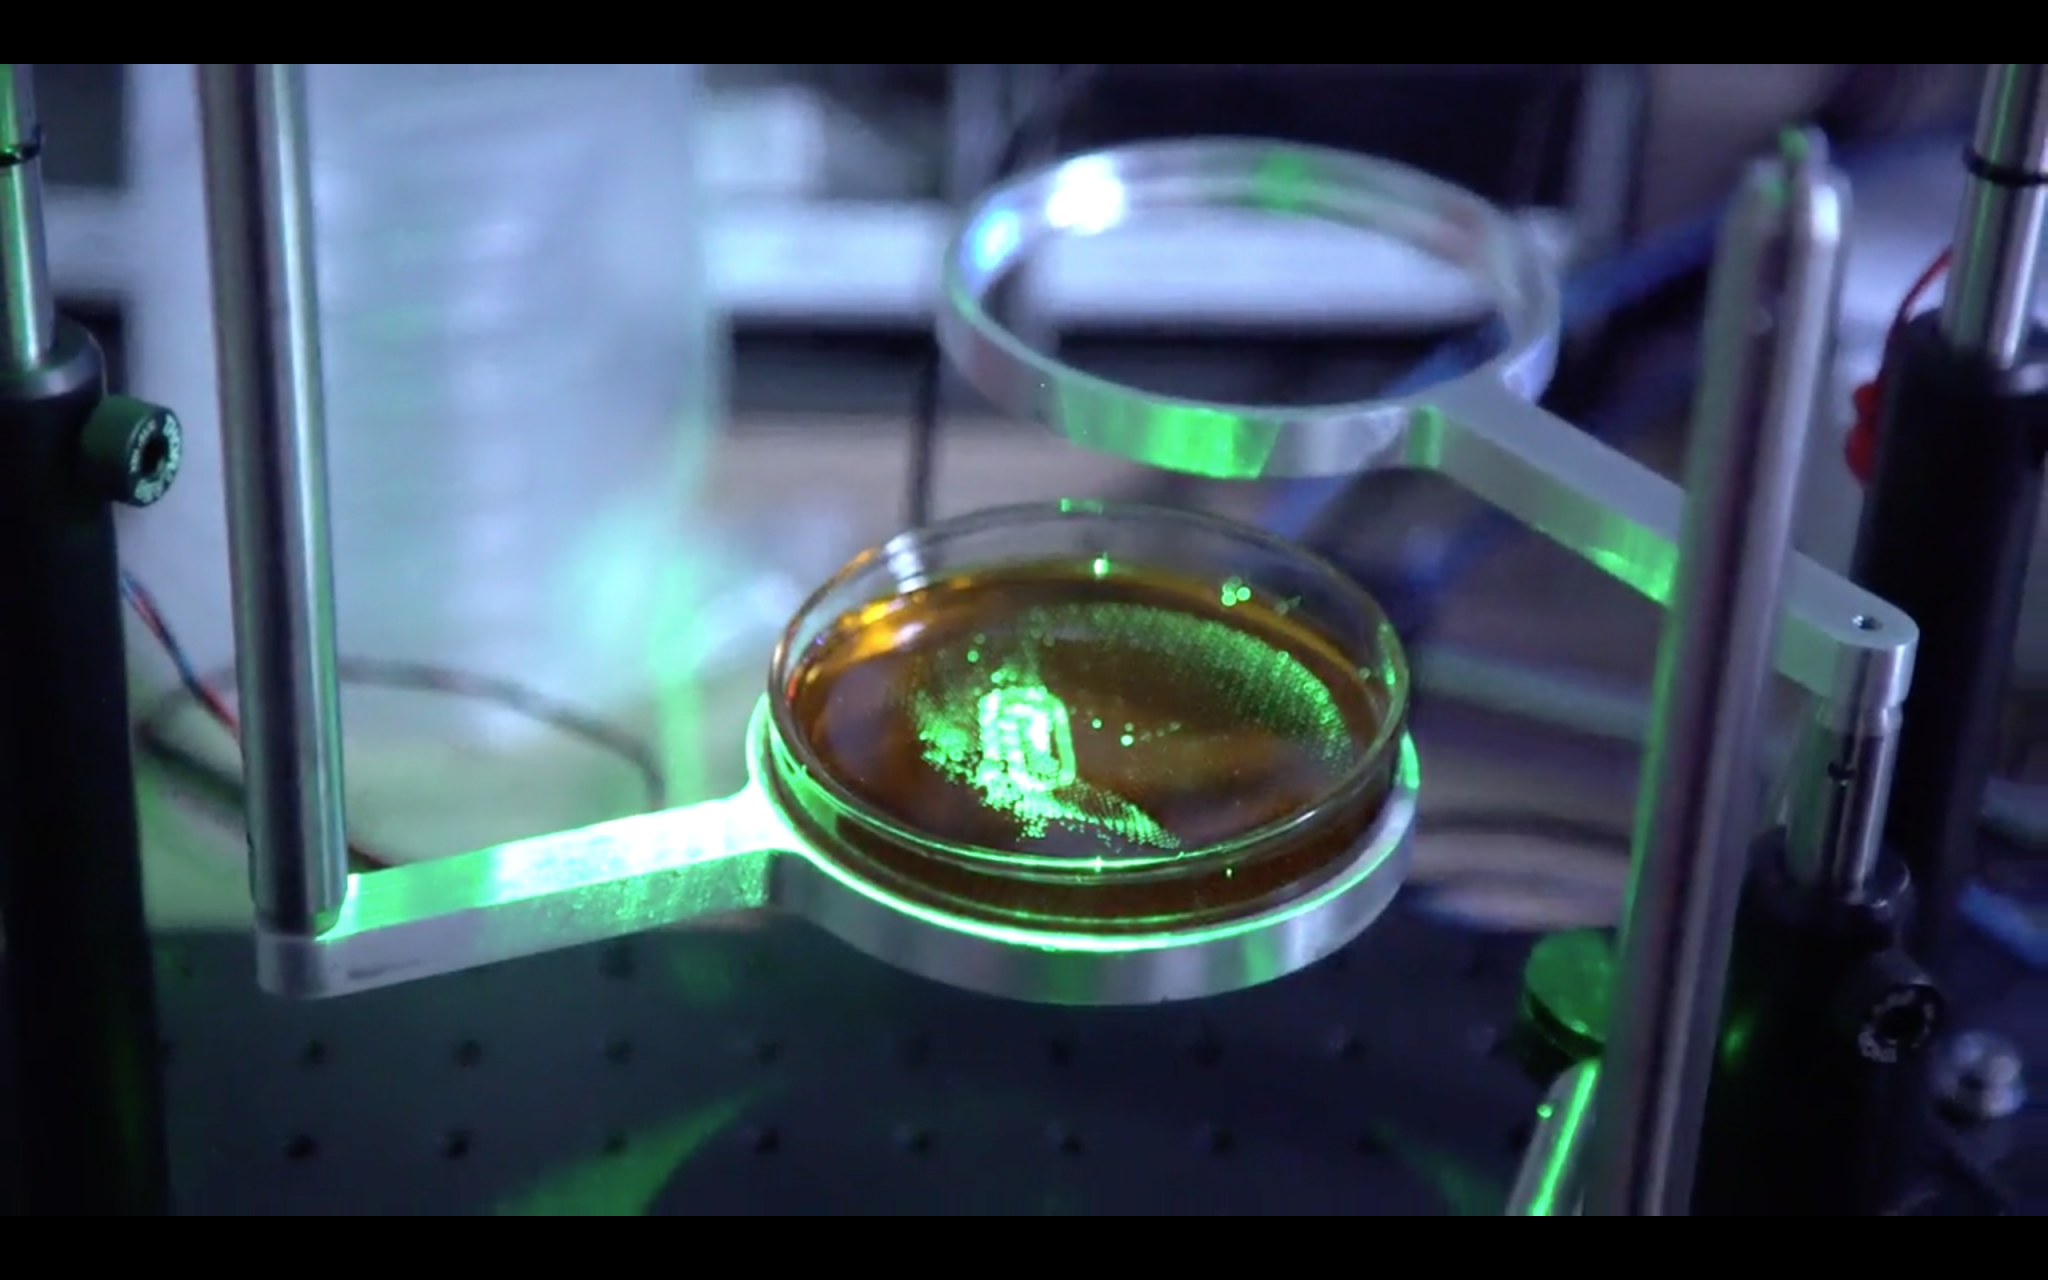 3D printing with holograms by DAQRI